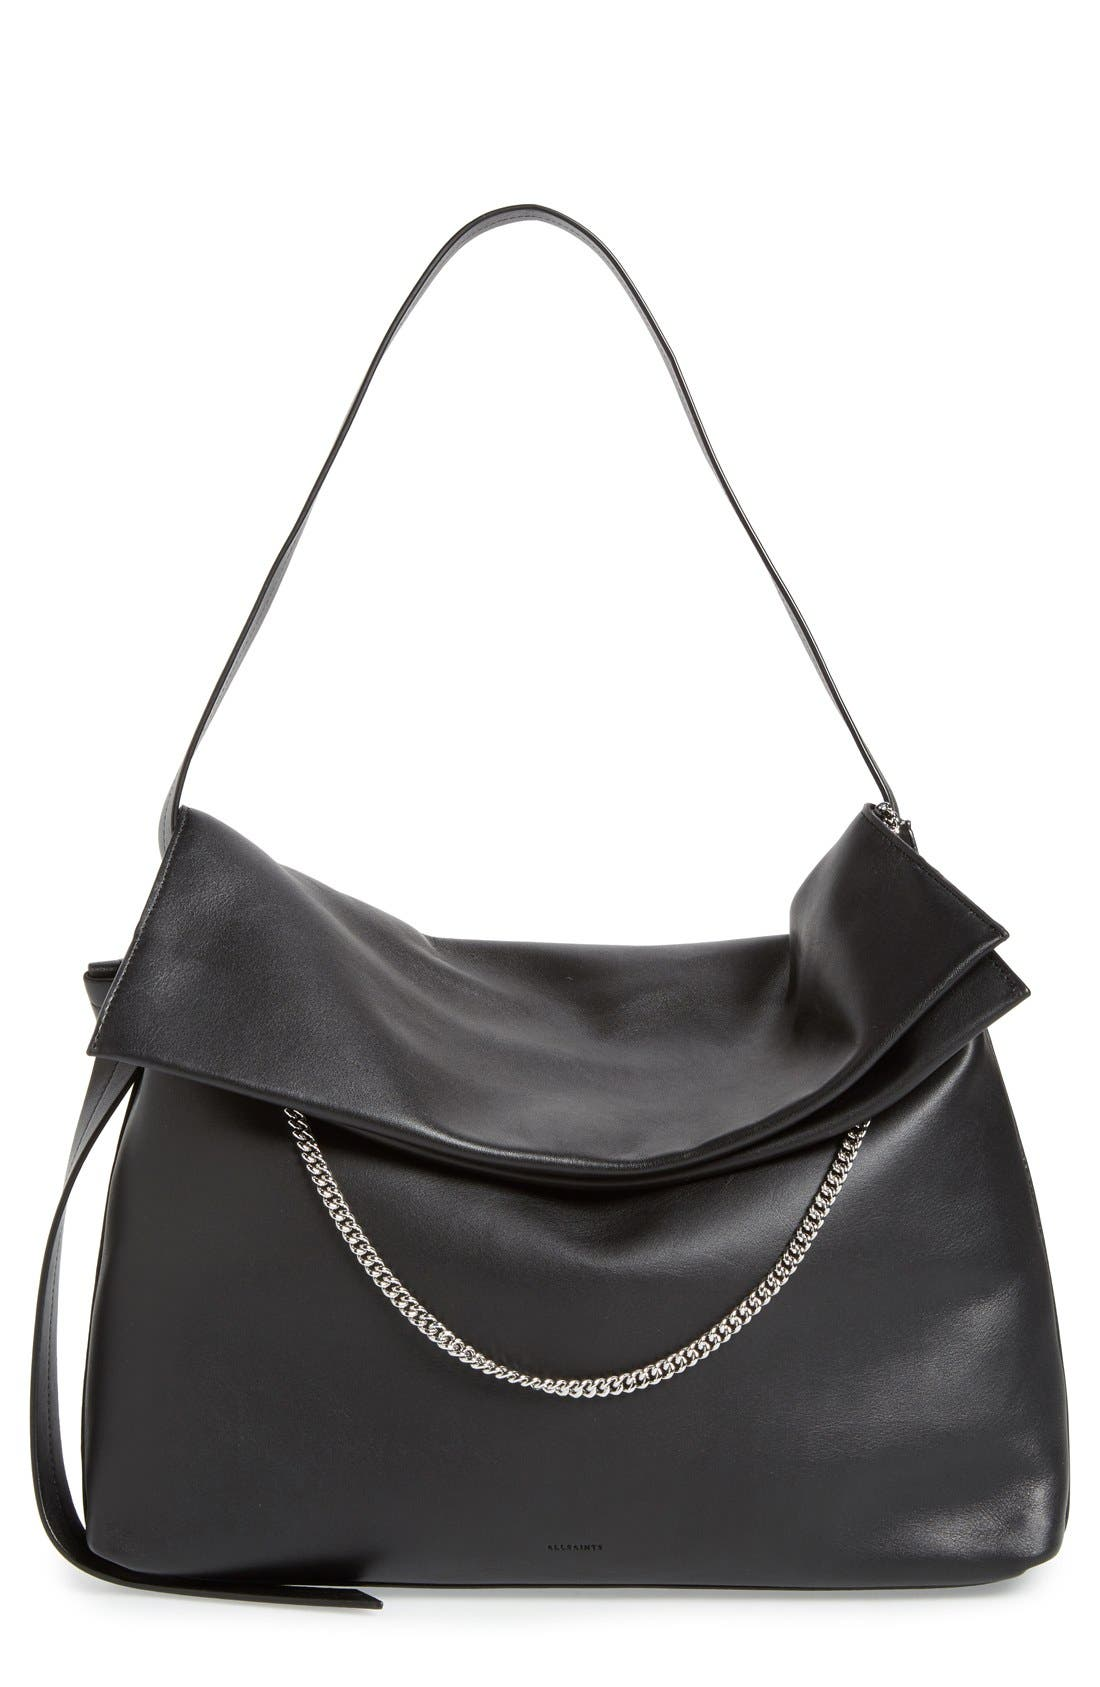 'Large Lafayette' Leather Shoulder Bag,                             Main thumbnail 1, color,                             001